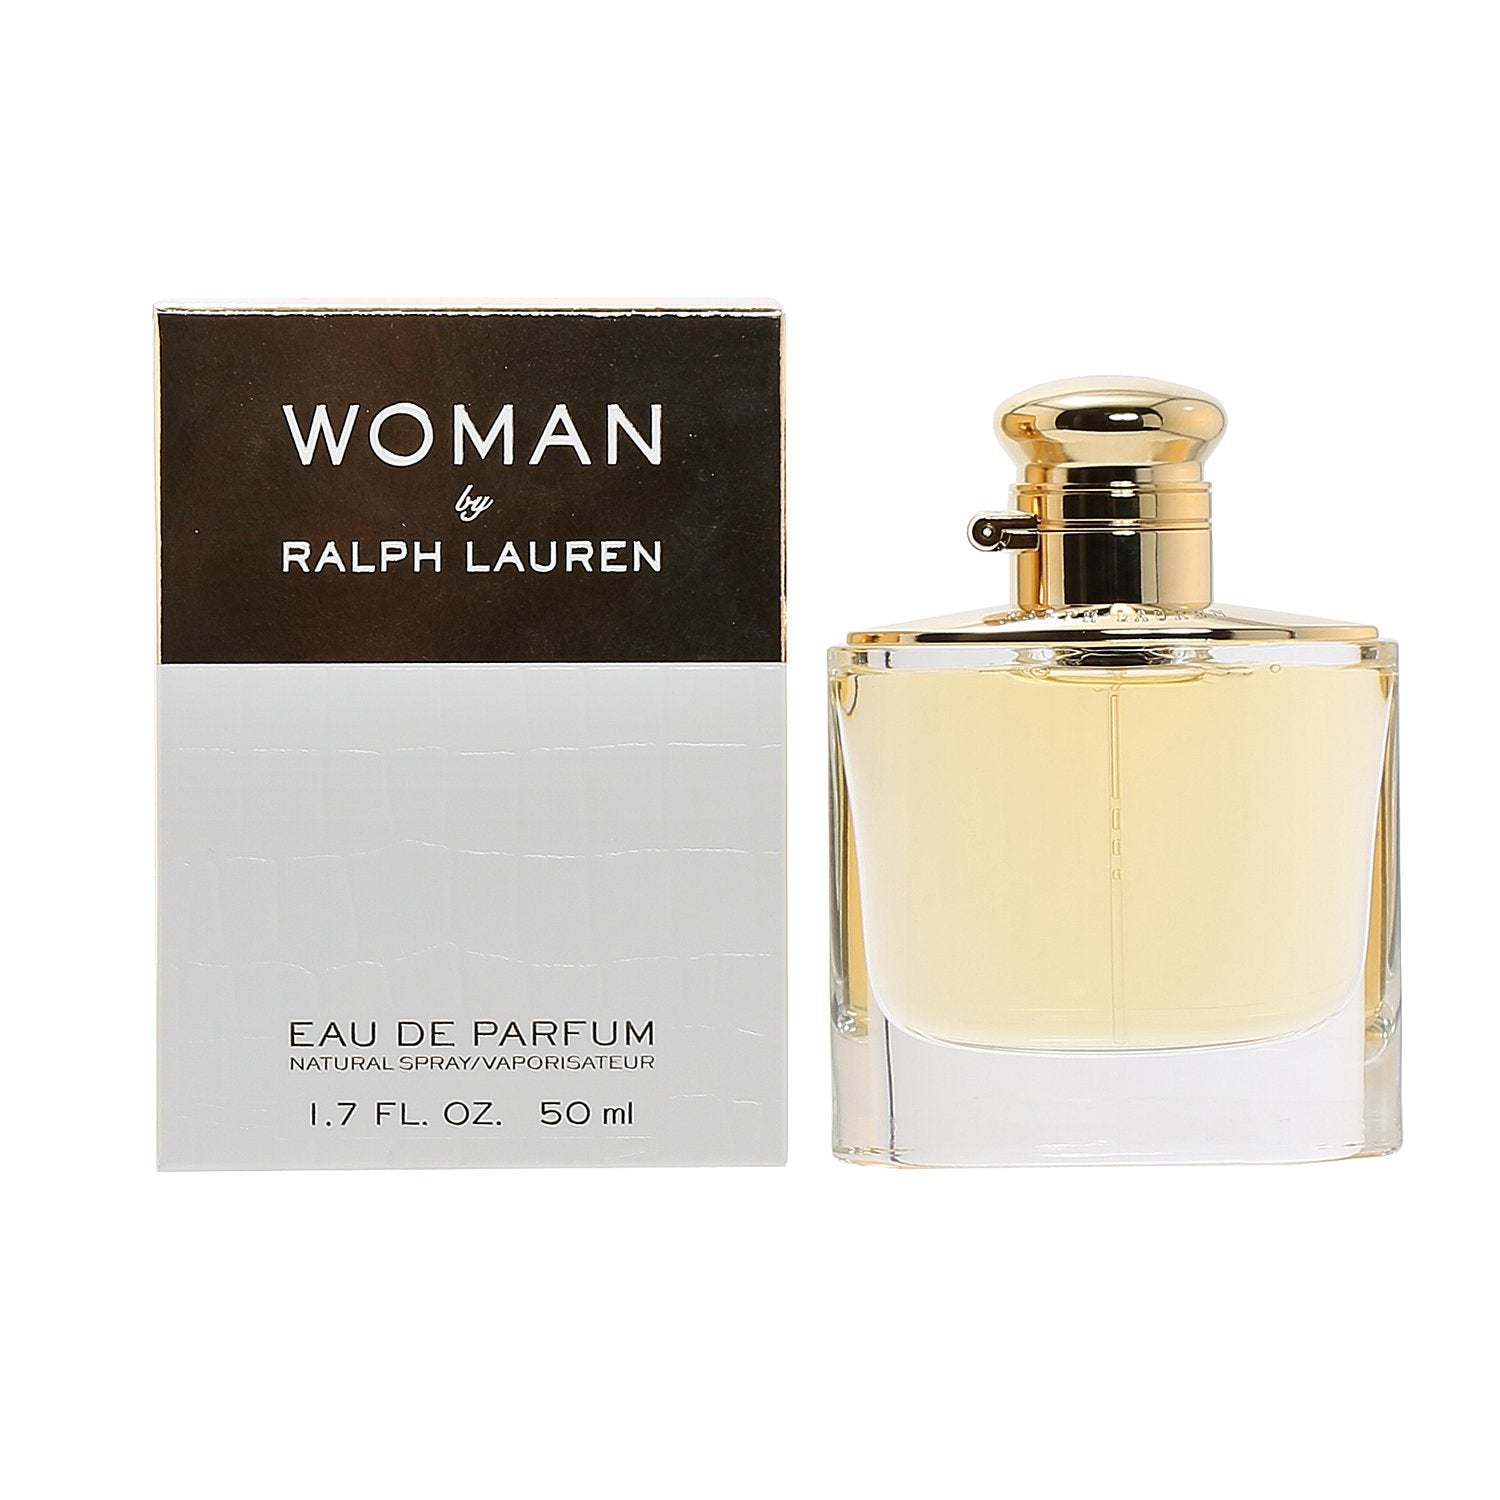 Perfume - WOMAN BY RALPH LAUREN - EAU DE PARFUM, 1.7 OZ